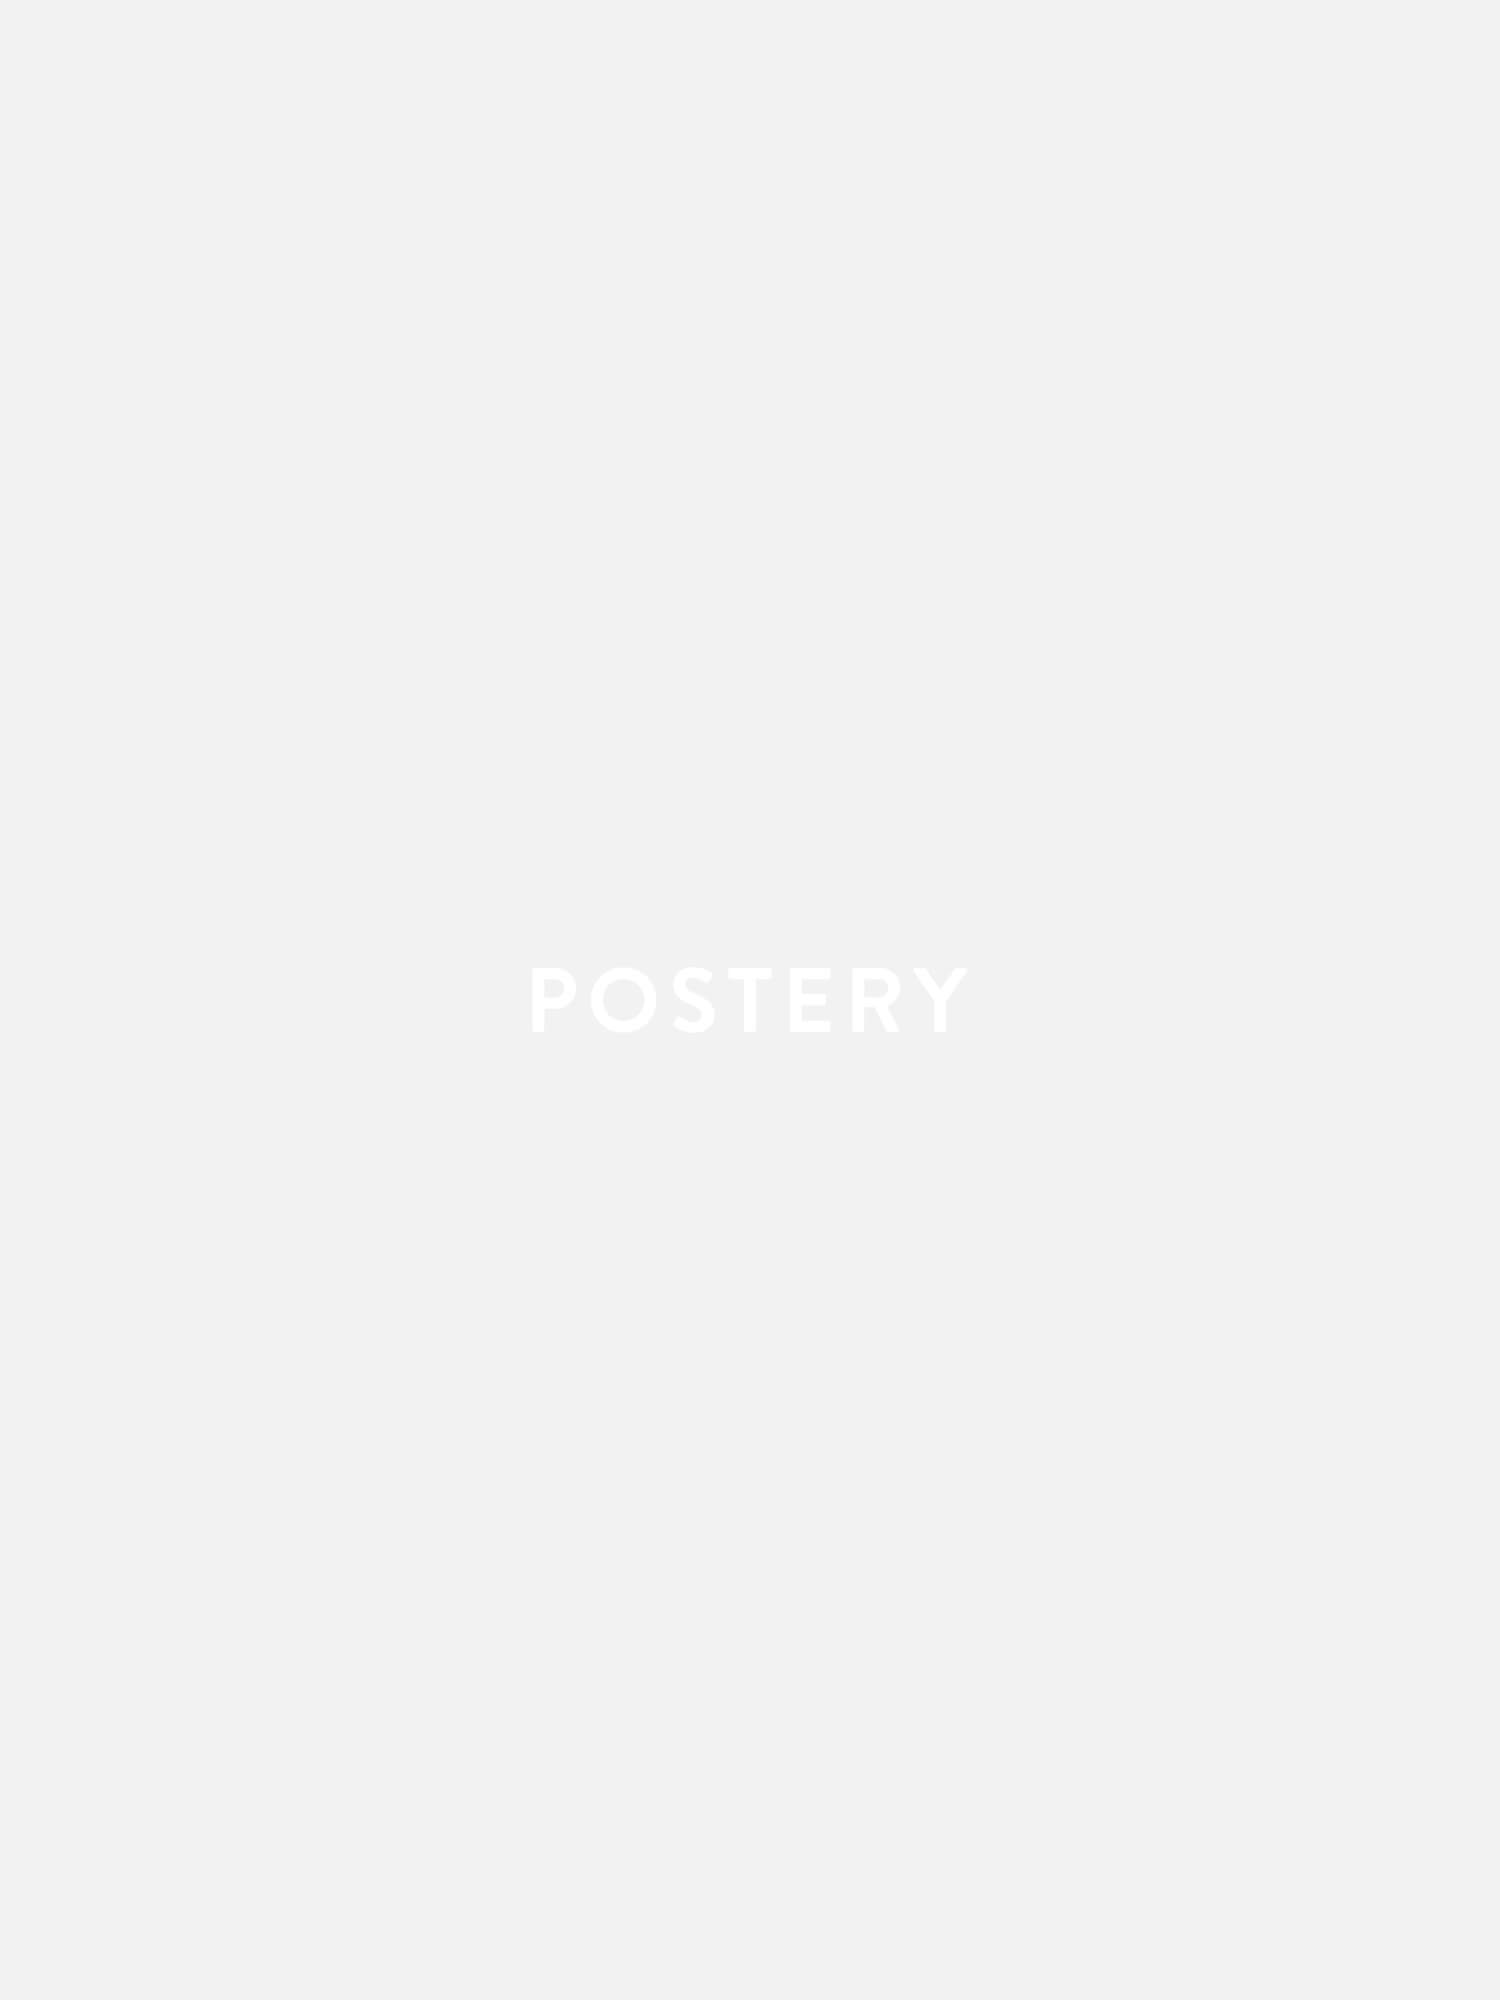 Abstract Ice no.2 Poster